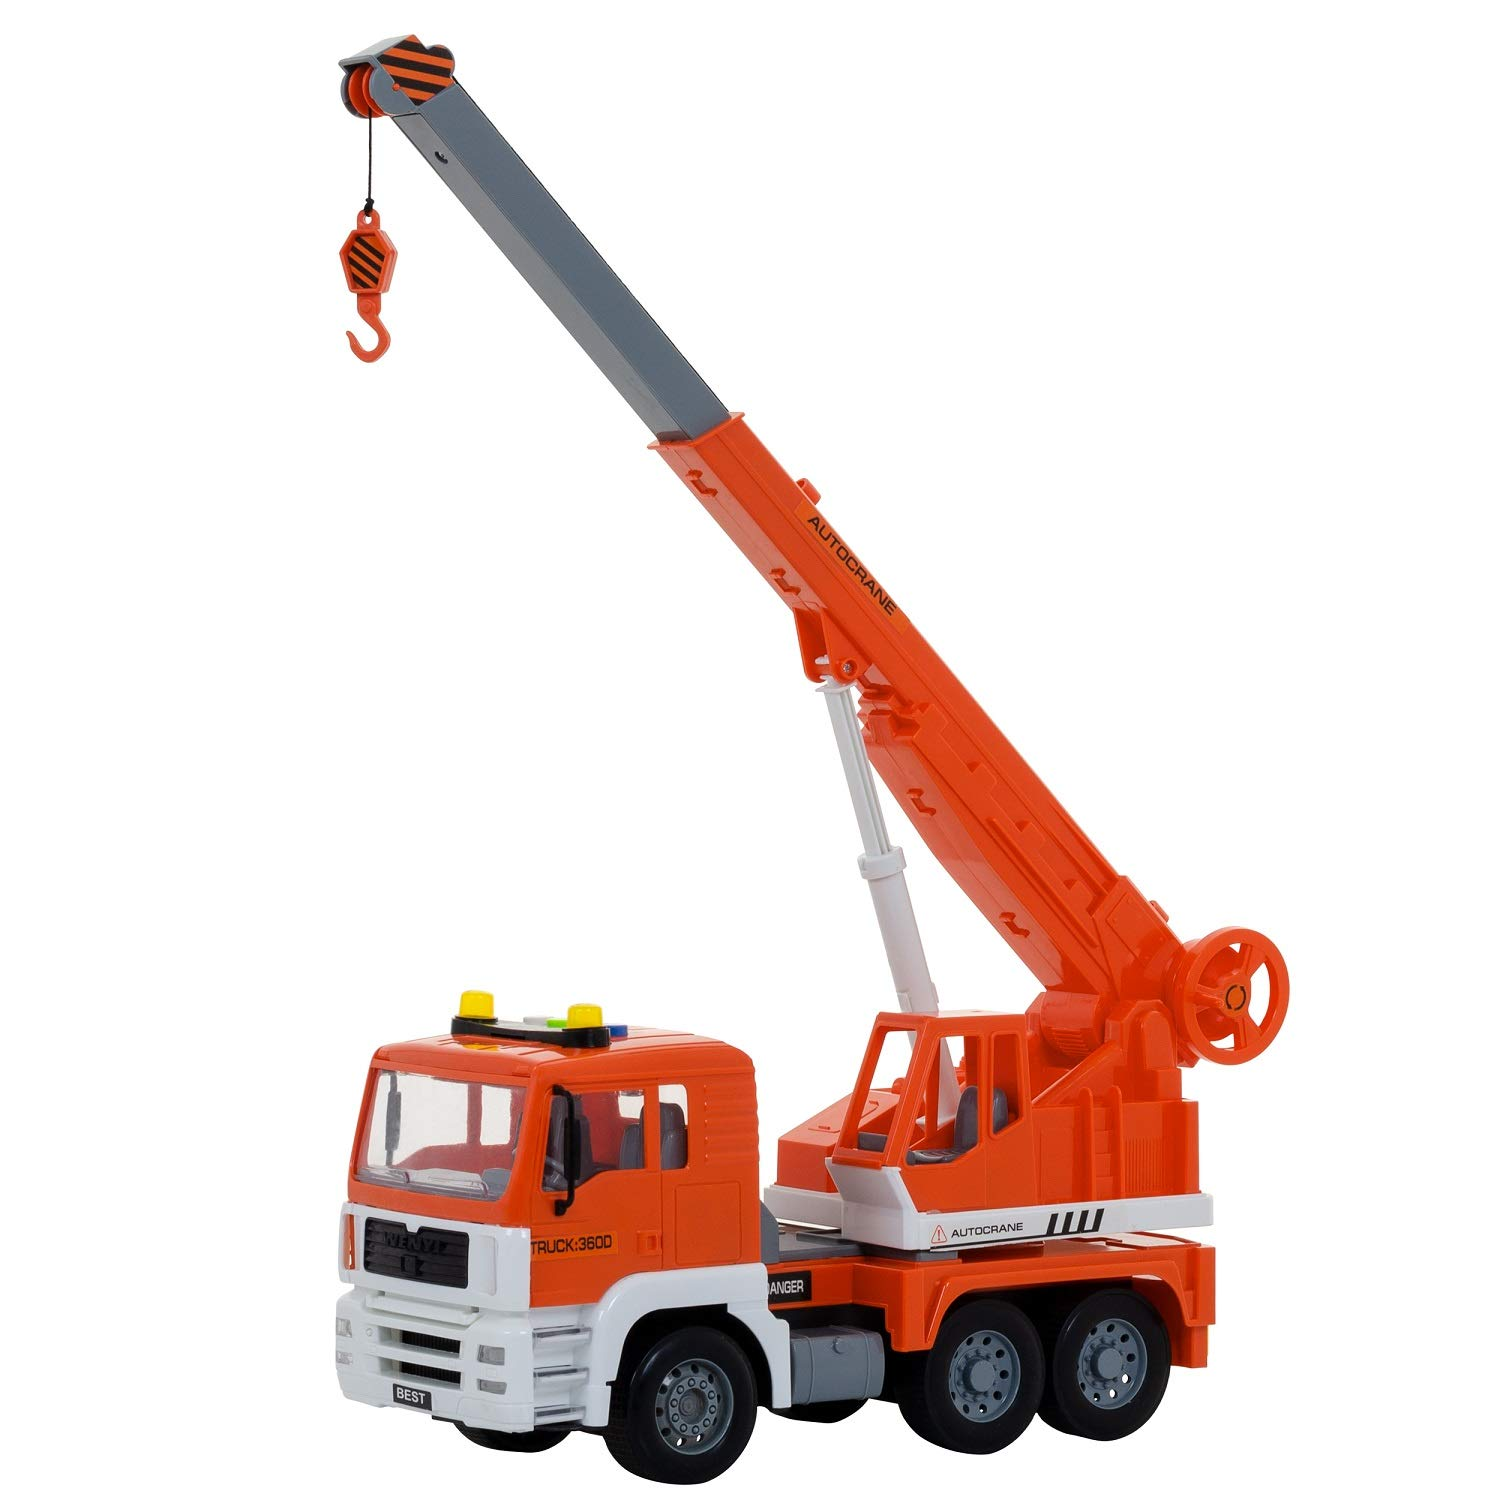 Construction Crane Truck Toy | Friction Powered | Lights And Sounds | Extendable Arm | Extendable String | Batteries Included | 6-Wheeler Crane Truck | Great Car Toys Gift Giveaways For Boys & Girls JoyABit